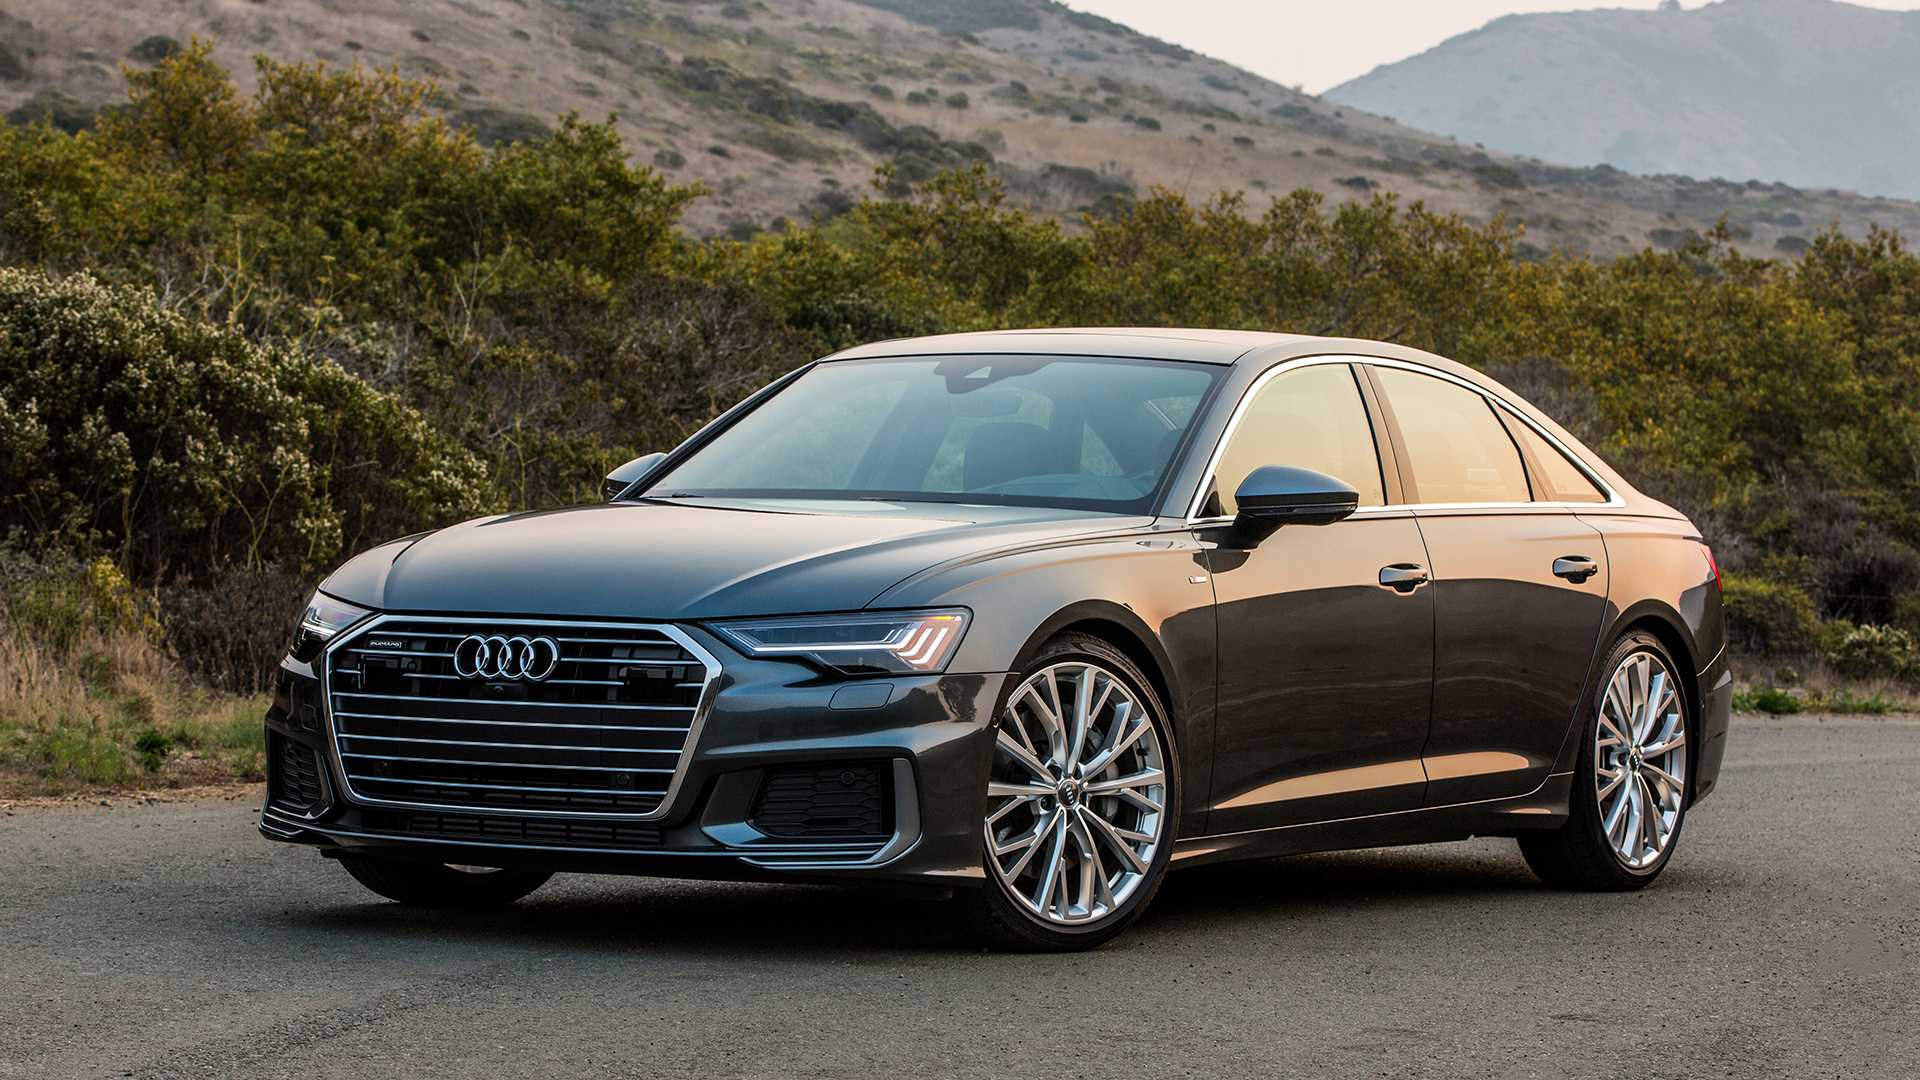 2019 audi a6 lease special carscouts. Black Bedroom Furniture Sets. Home Design Ideas